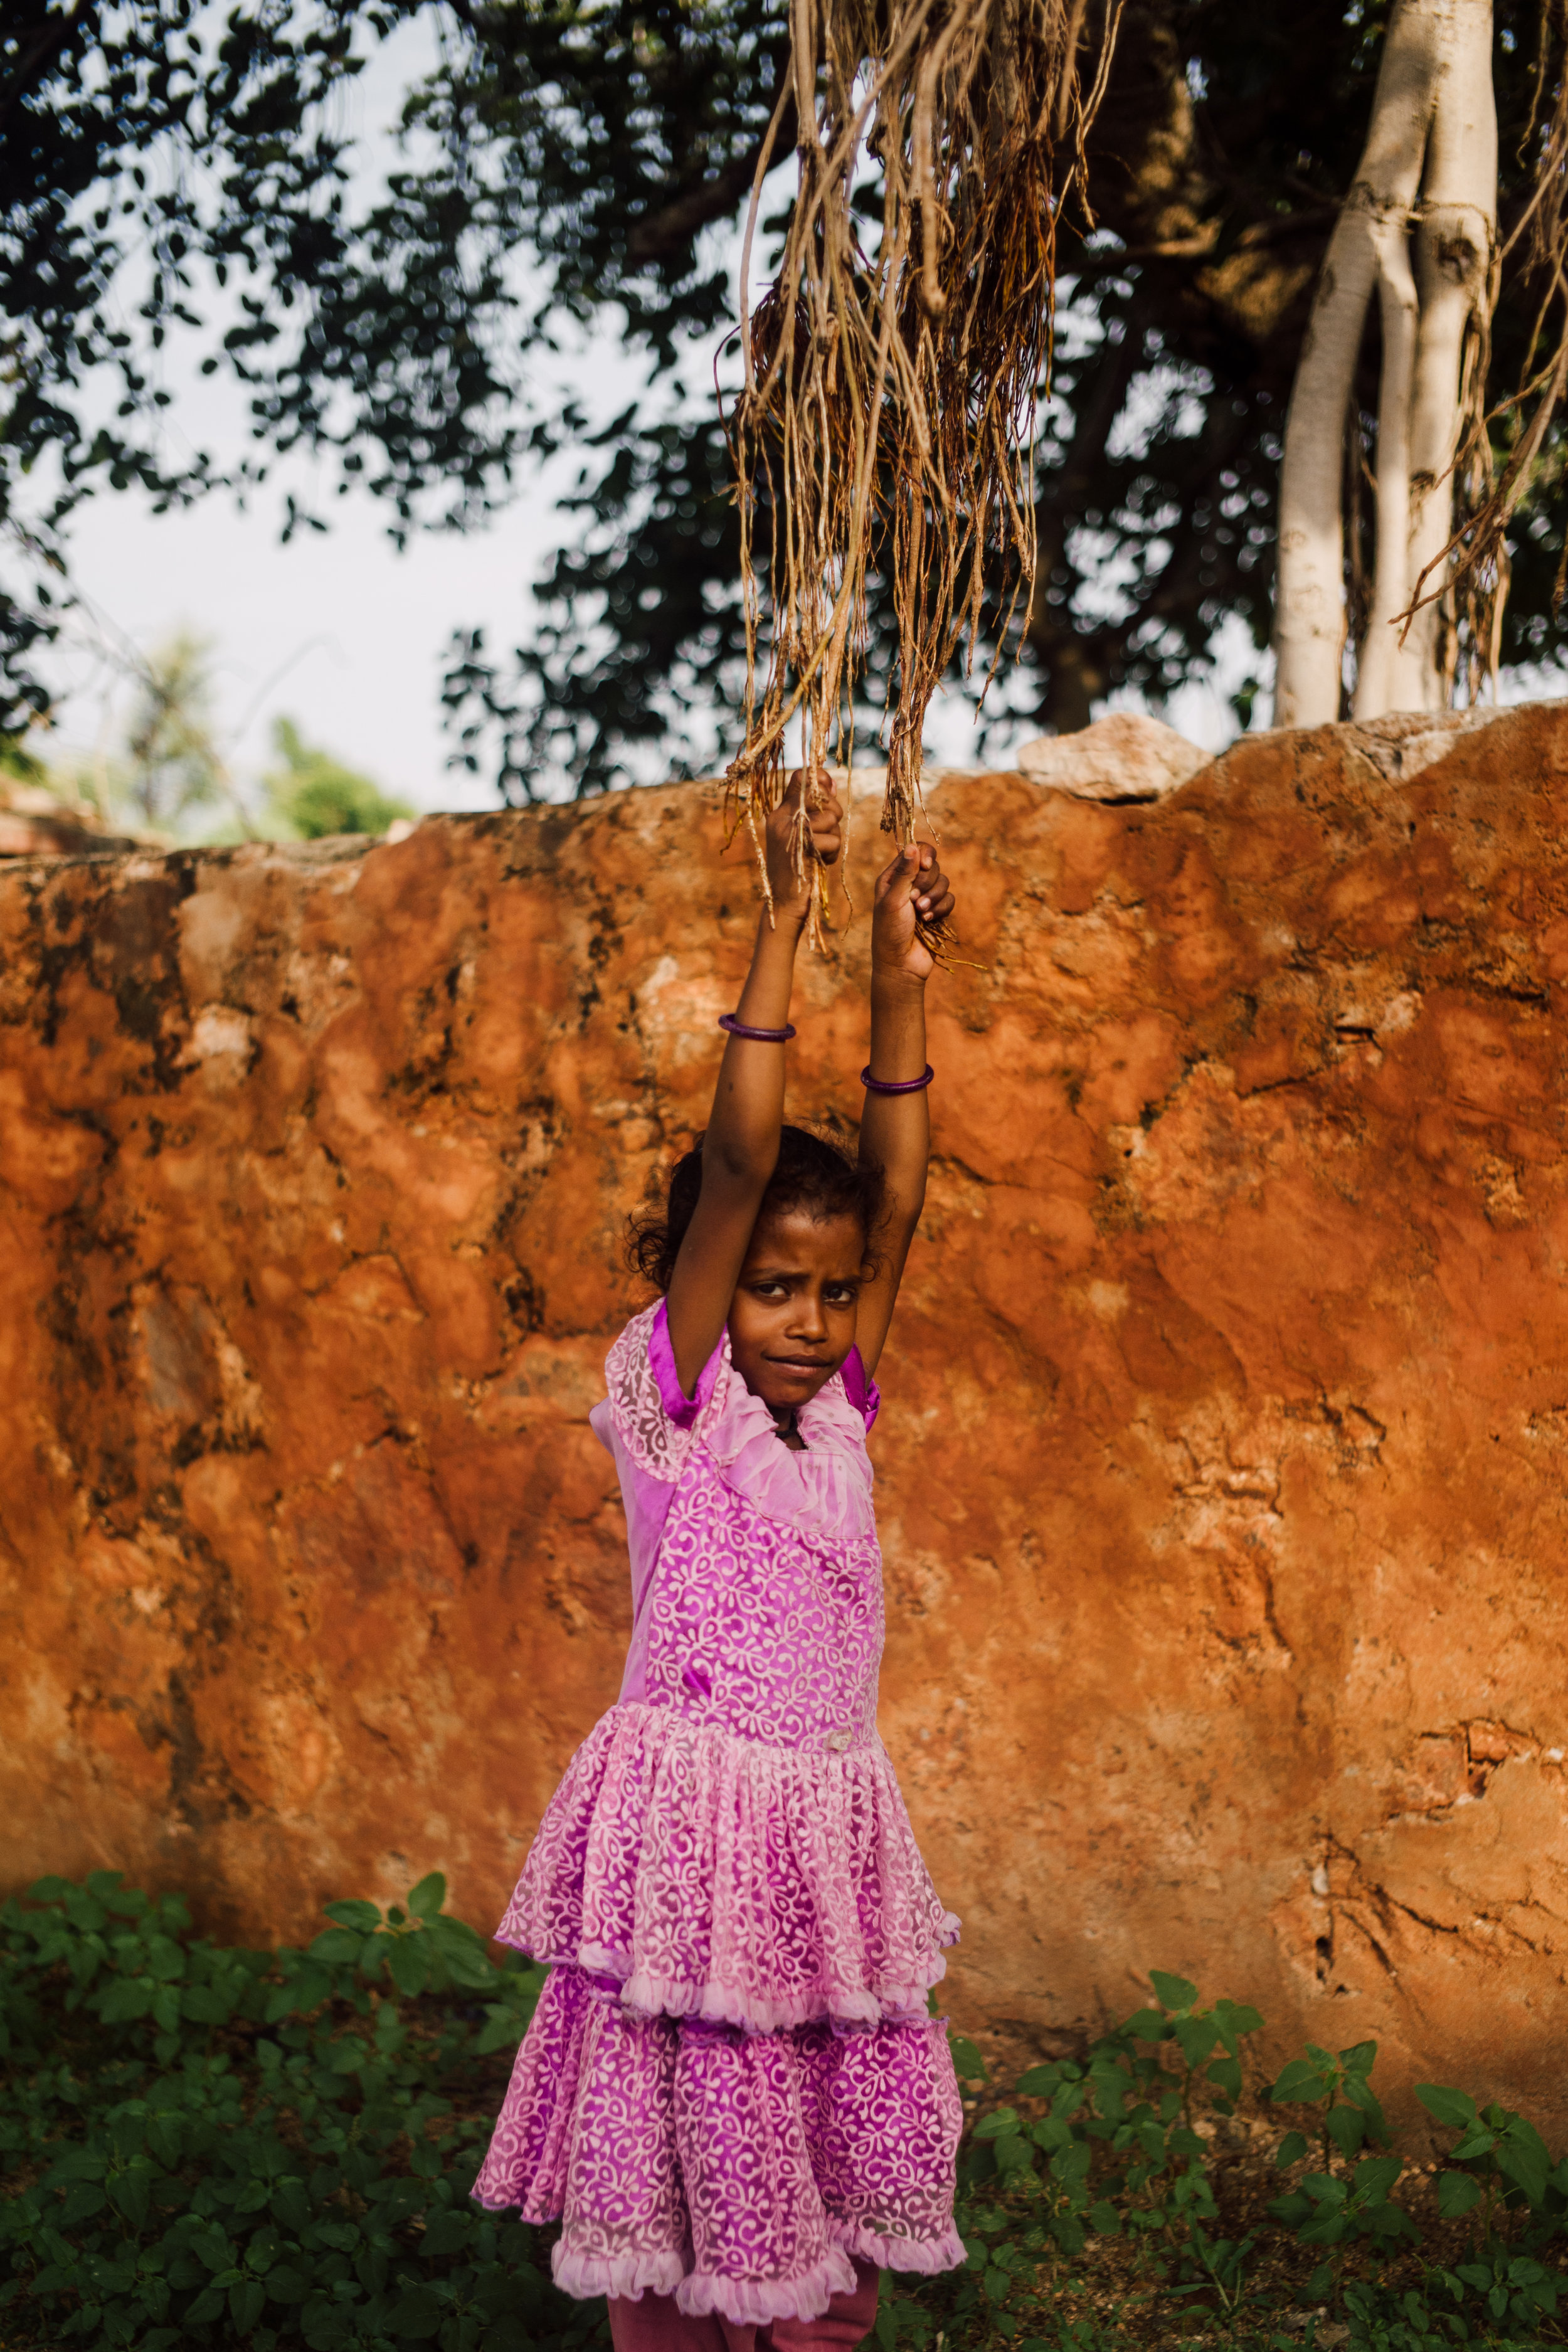 On my journey from Jodhpur to Udaipur, we pulled off the side of the road to take a breather. Here we found a girl swining from a set of tree vines, she would use these tree vines and the wall behind her as a makeshift swing.